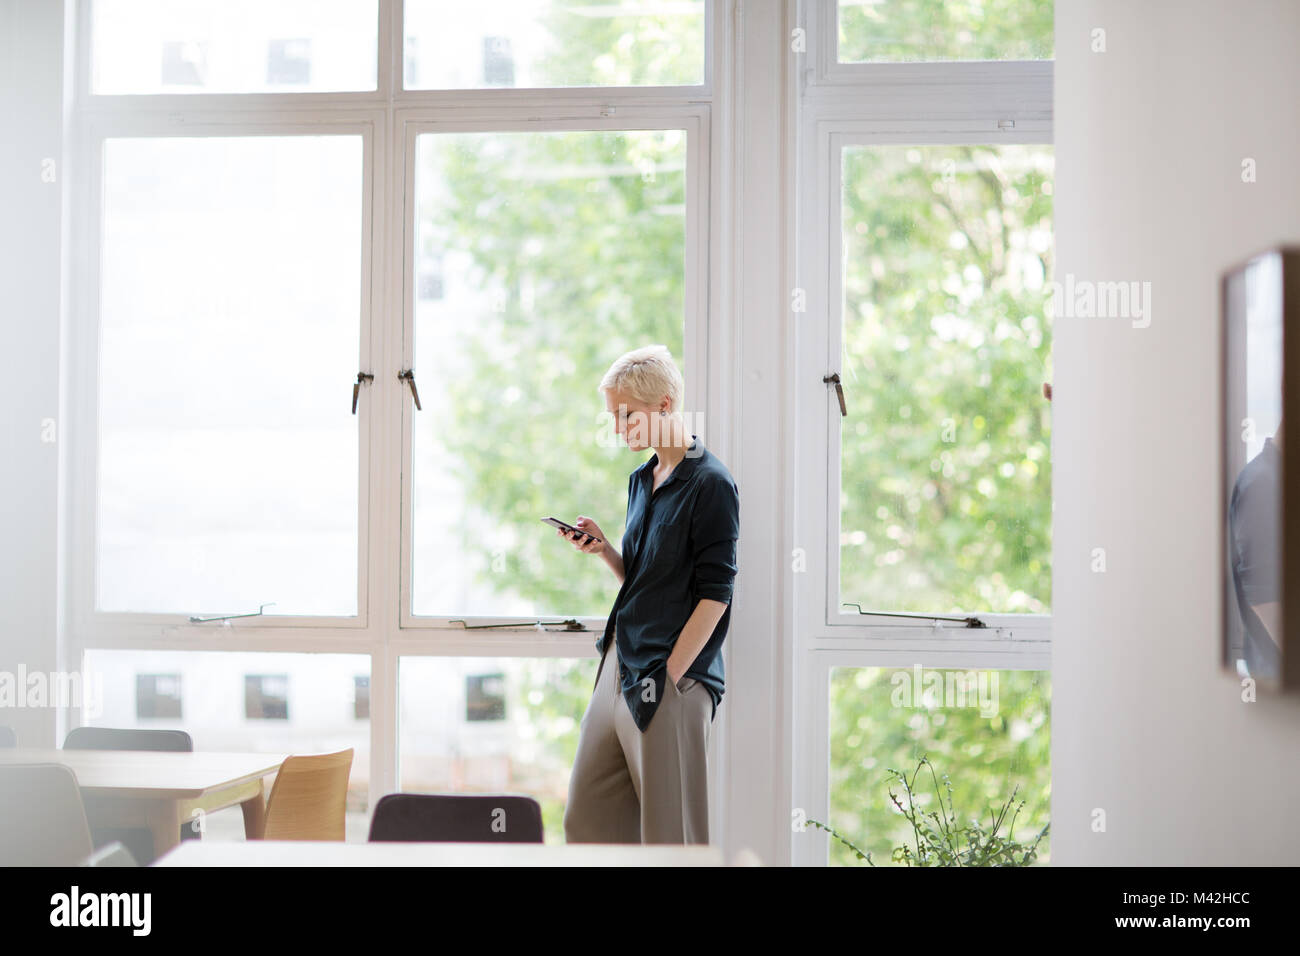 Businesswoman in empty office looking at smartphone - Stock Image